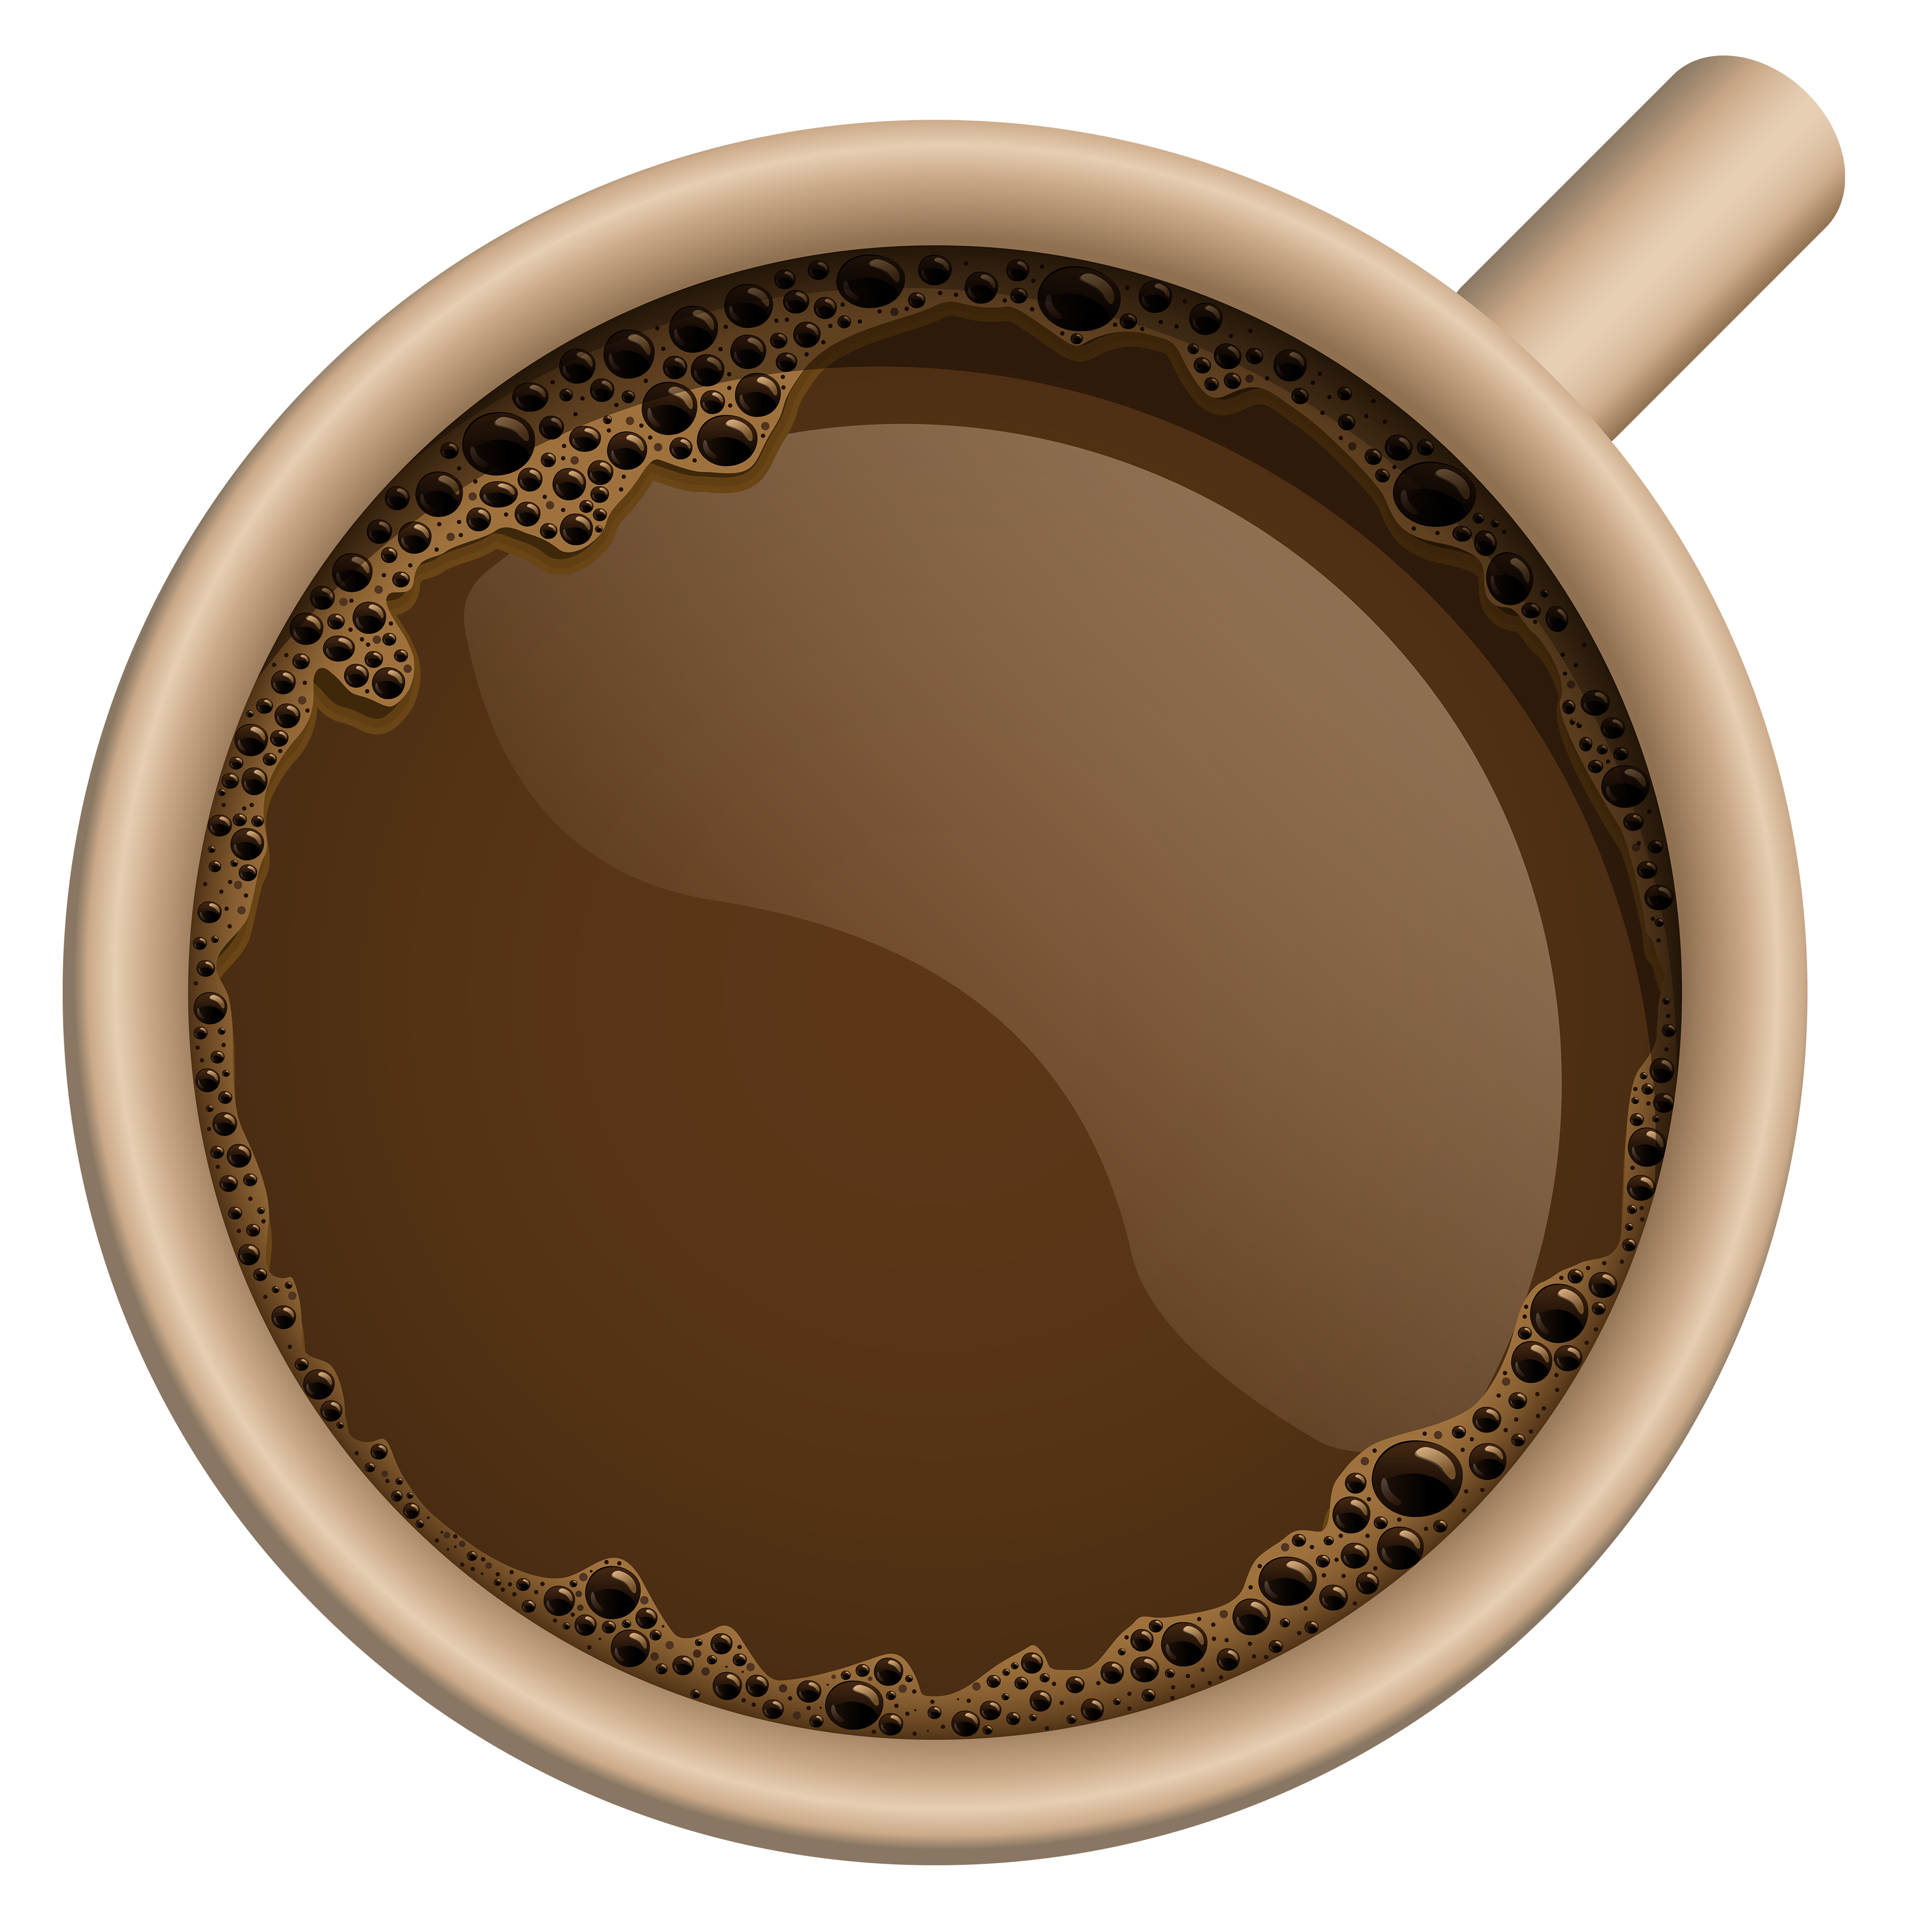 Brown cup png image. Clipart coffee banner